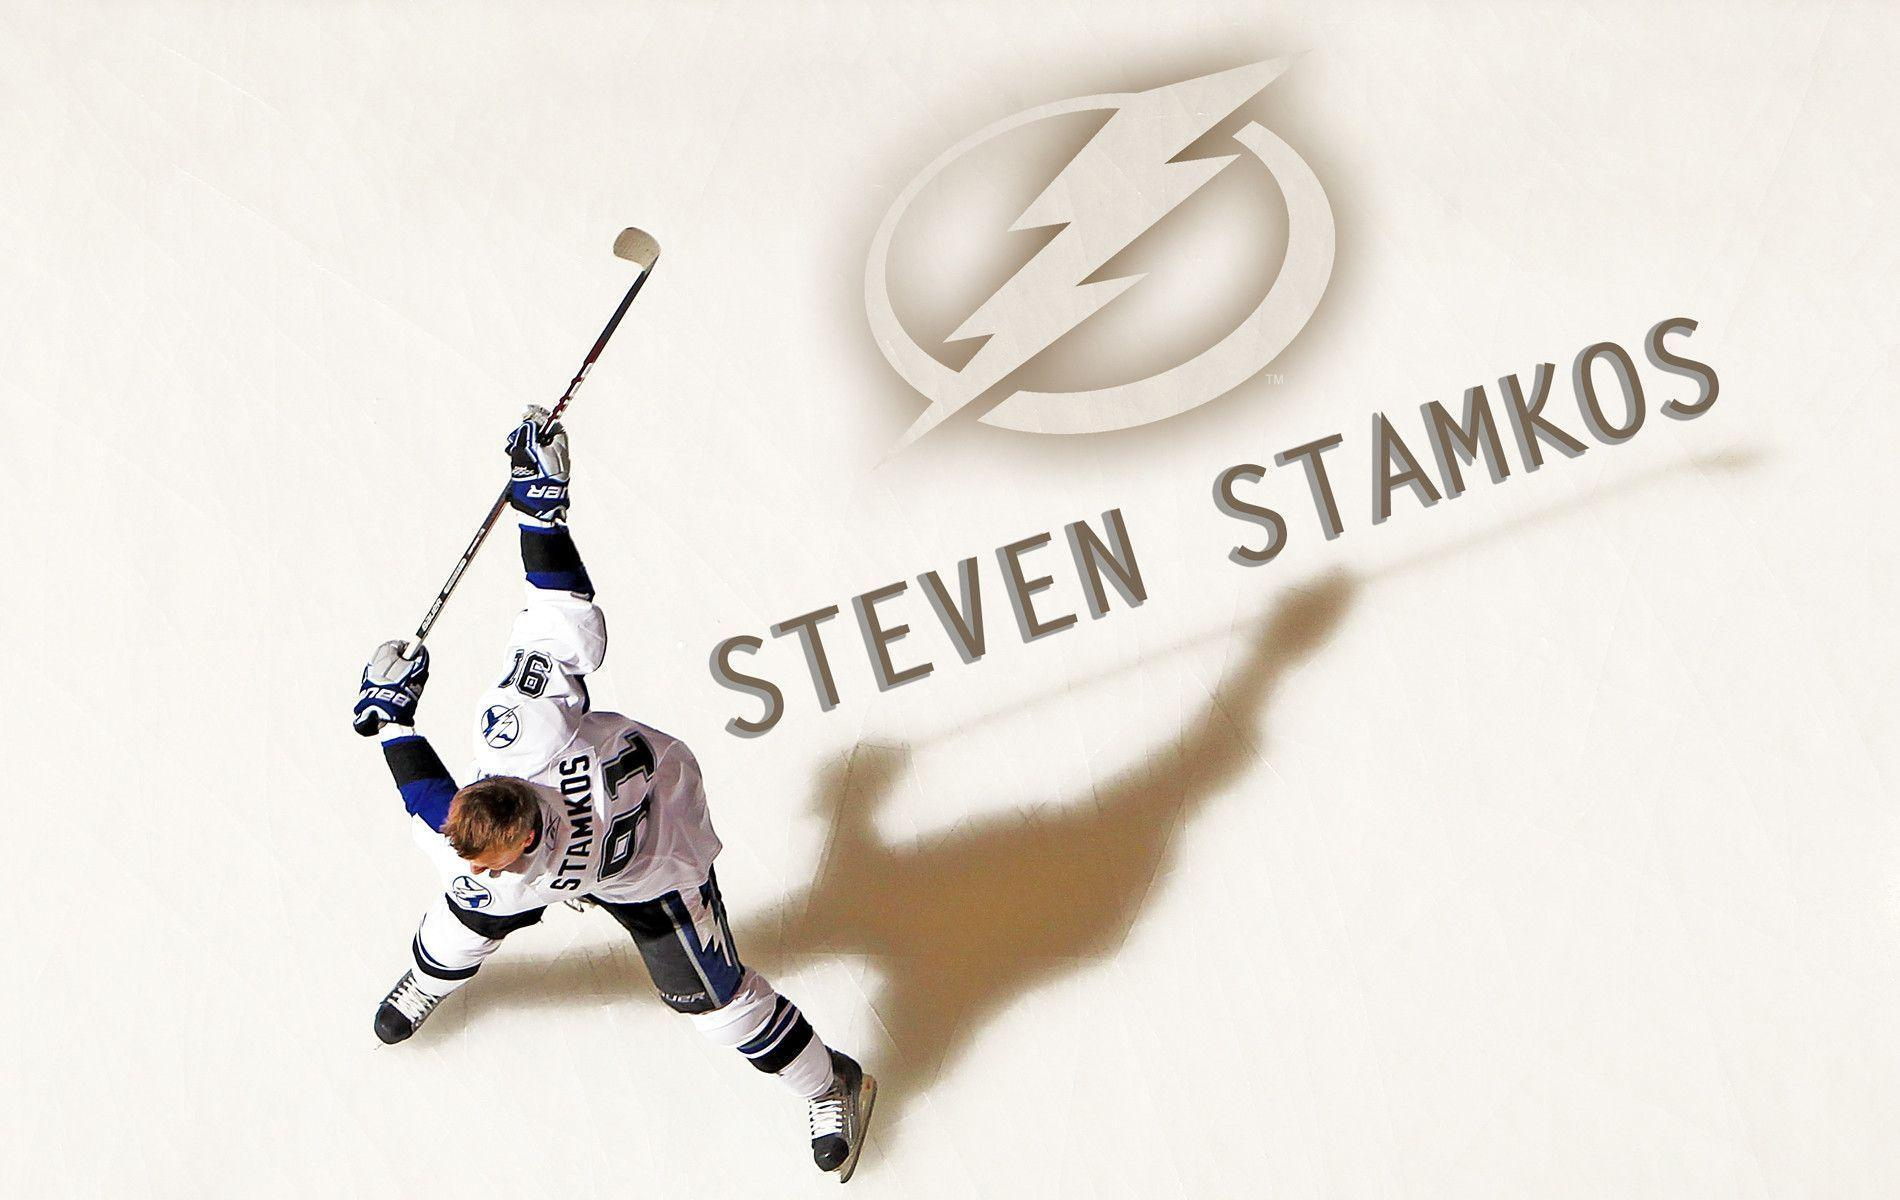 Steven Stamkos Wallpaper - Tampa Bay Lightning Photo (30398656 ...